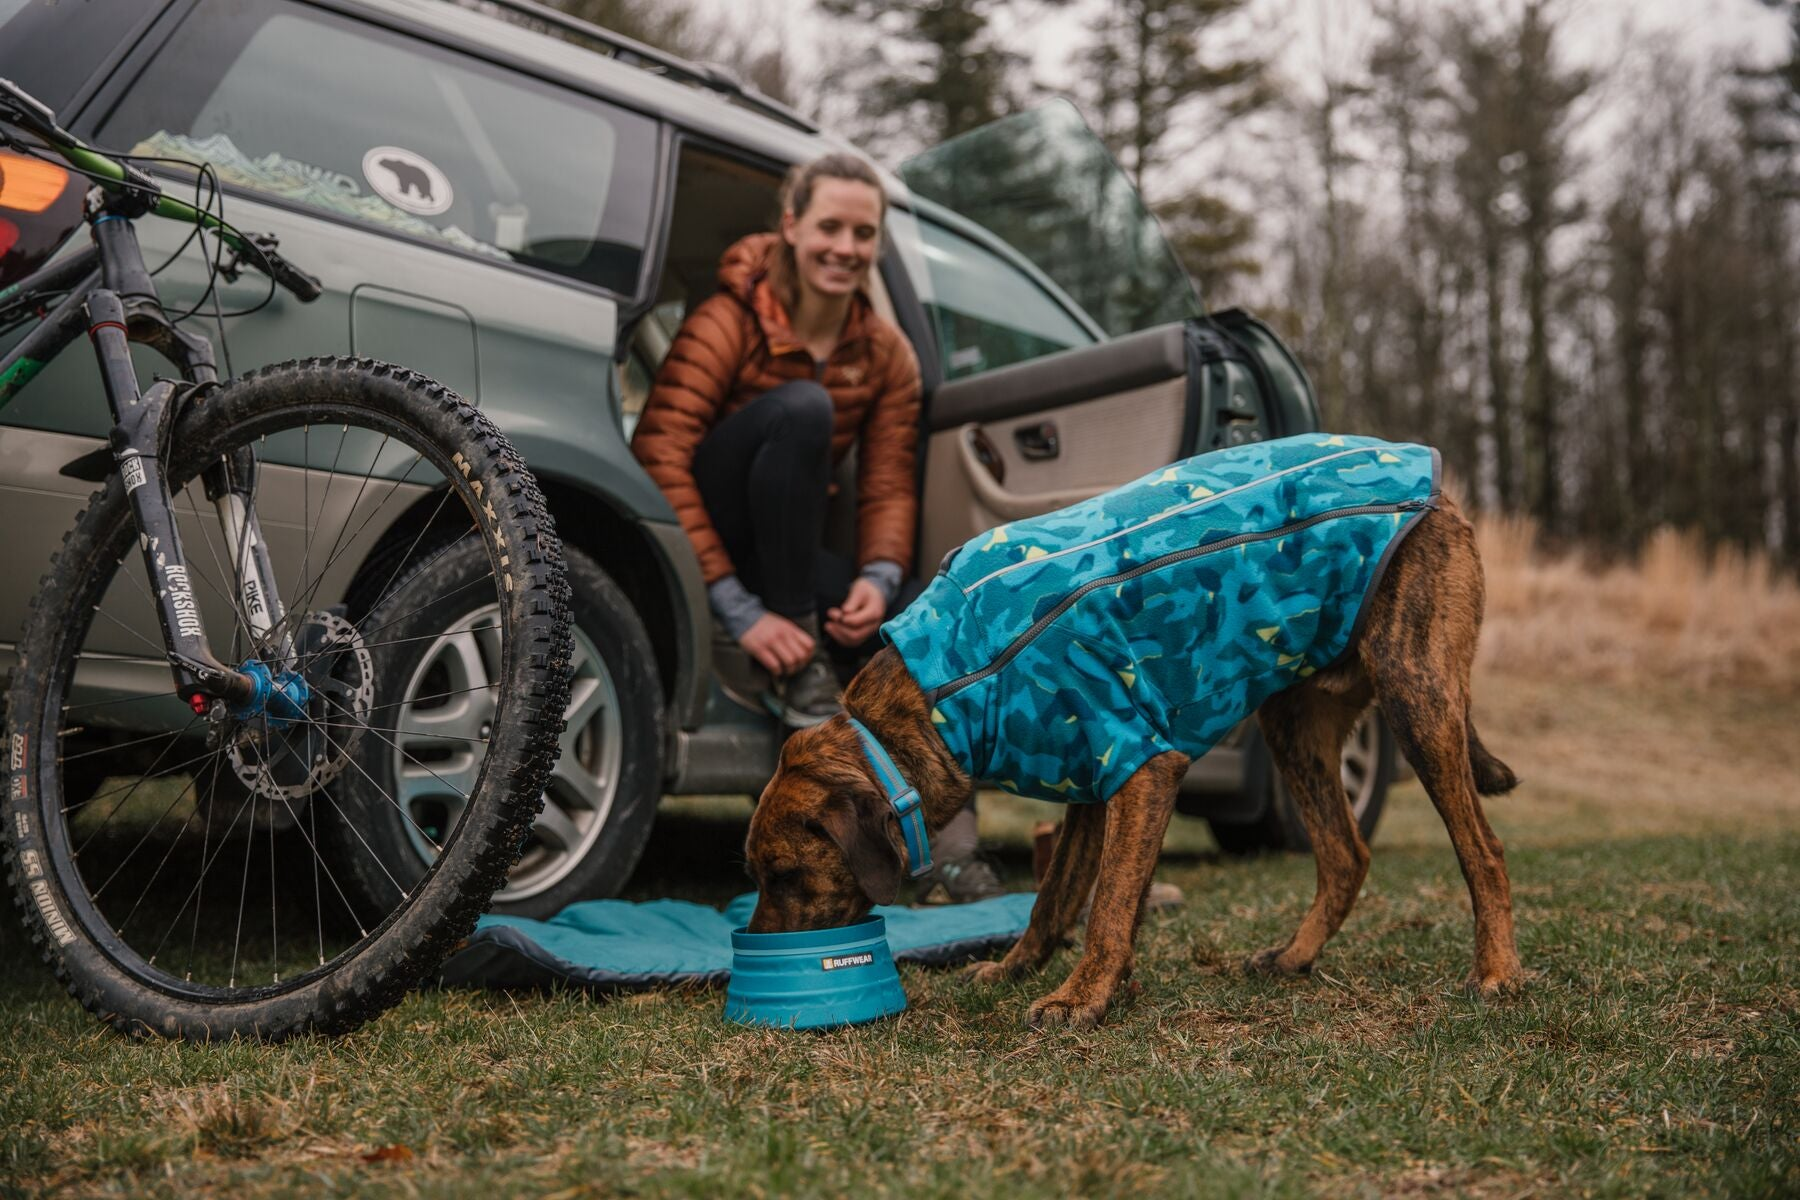 Dog in glacier print climate changer fleece drinks out of bivy bowl next to car after bike ride.